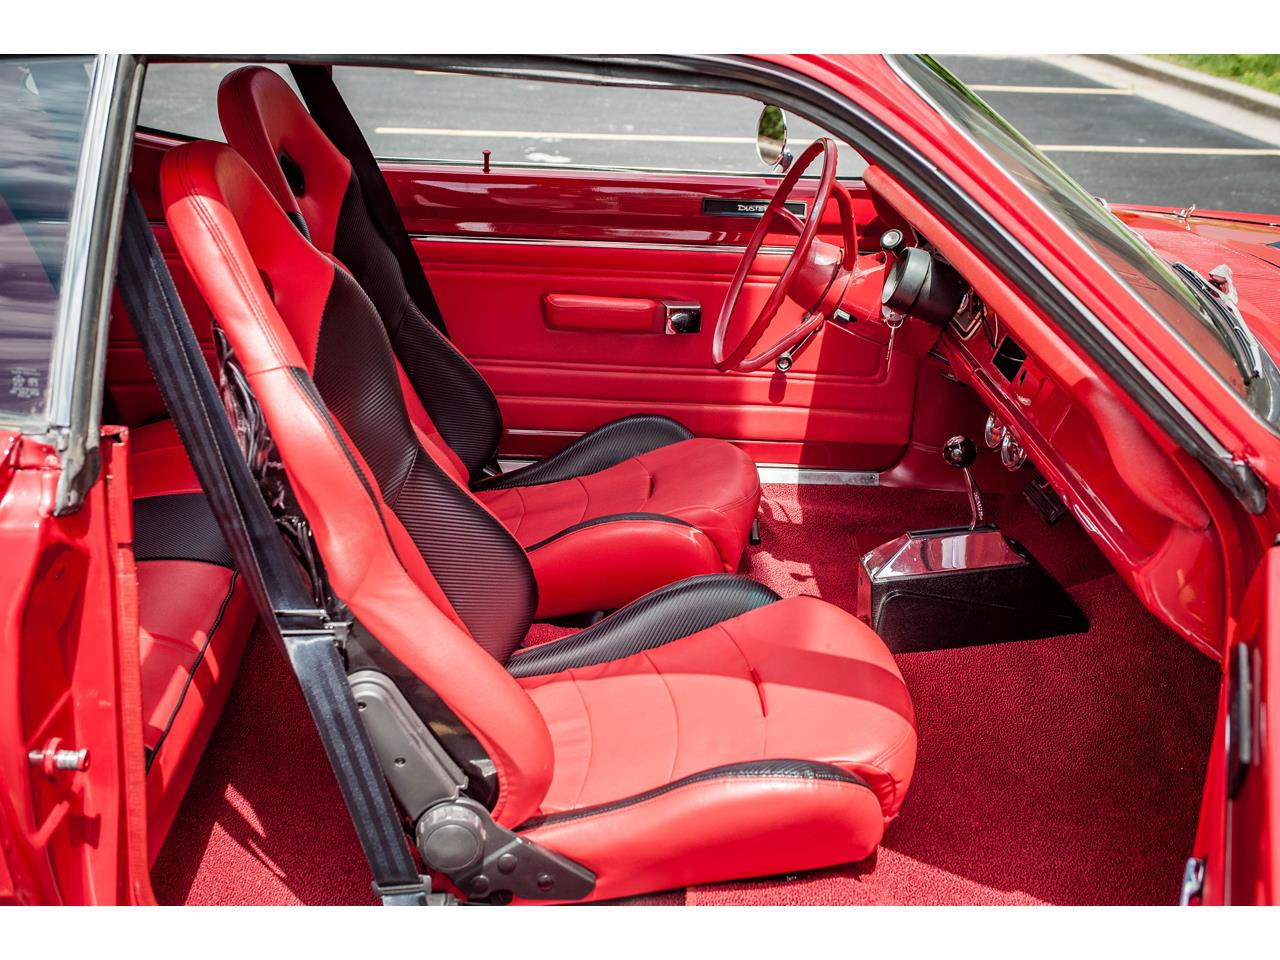 Large Picture of Classic 1971 Duster - $30,000.00 Offered by Gateway Classic Cars - St. Louis - QB9U